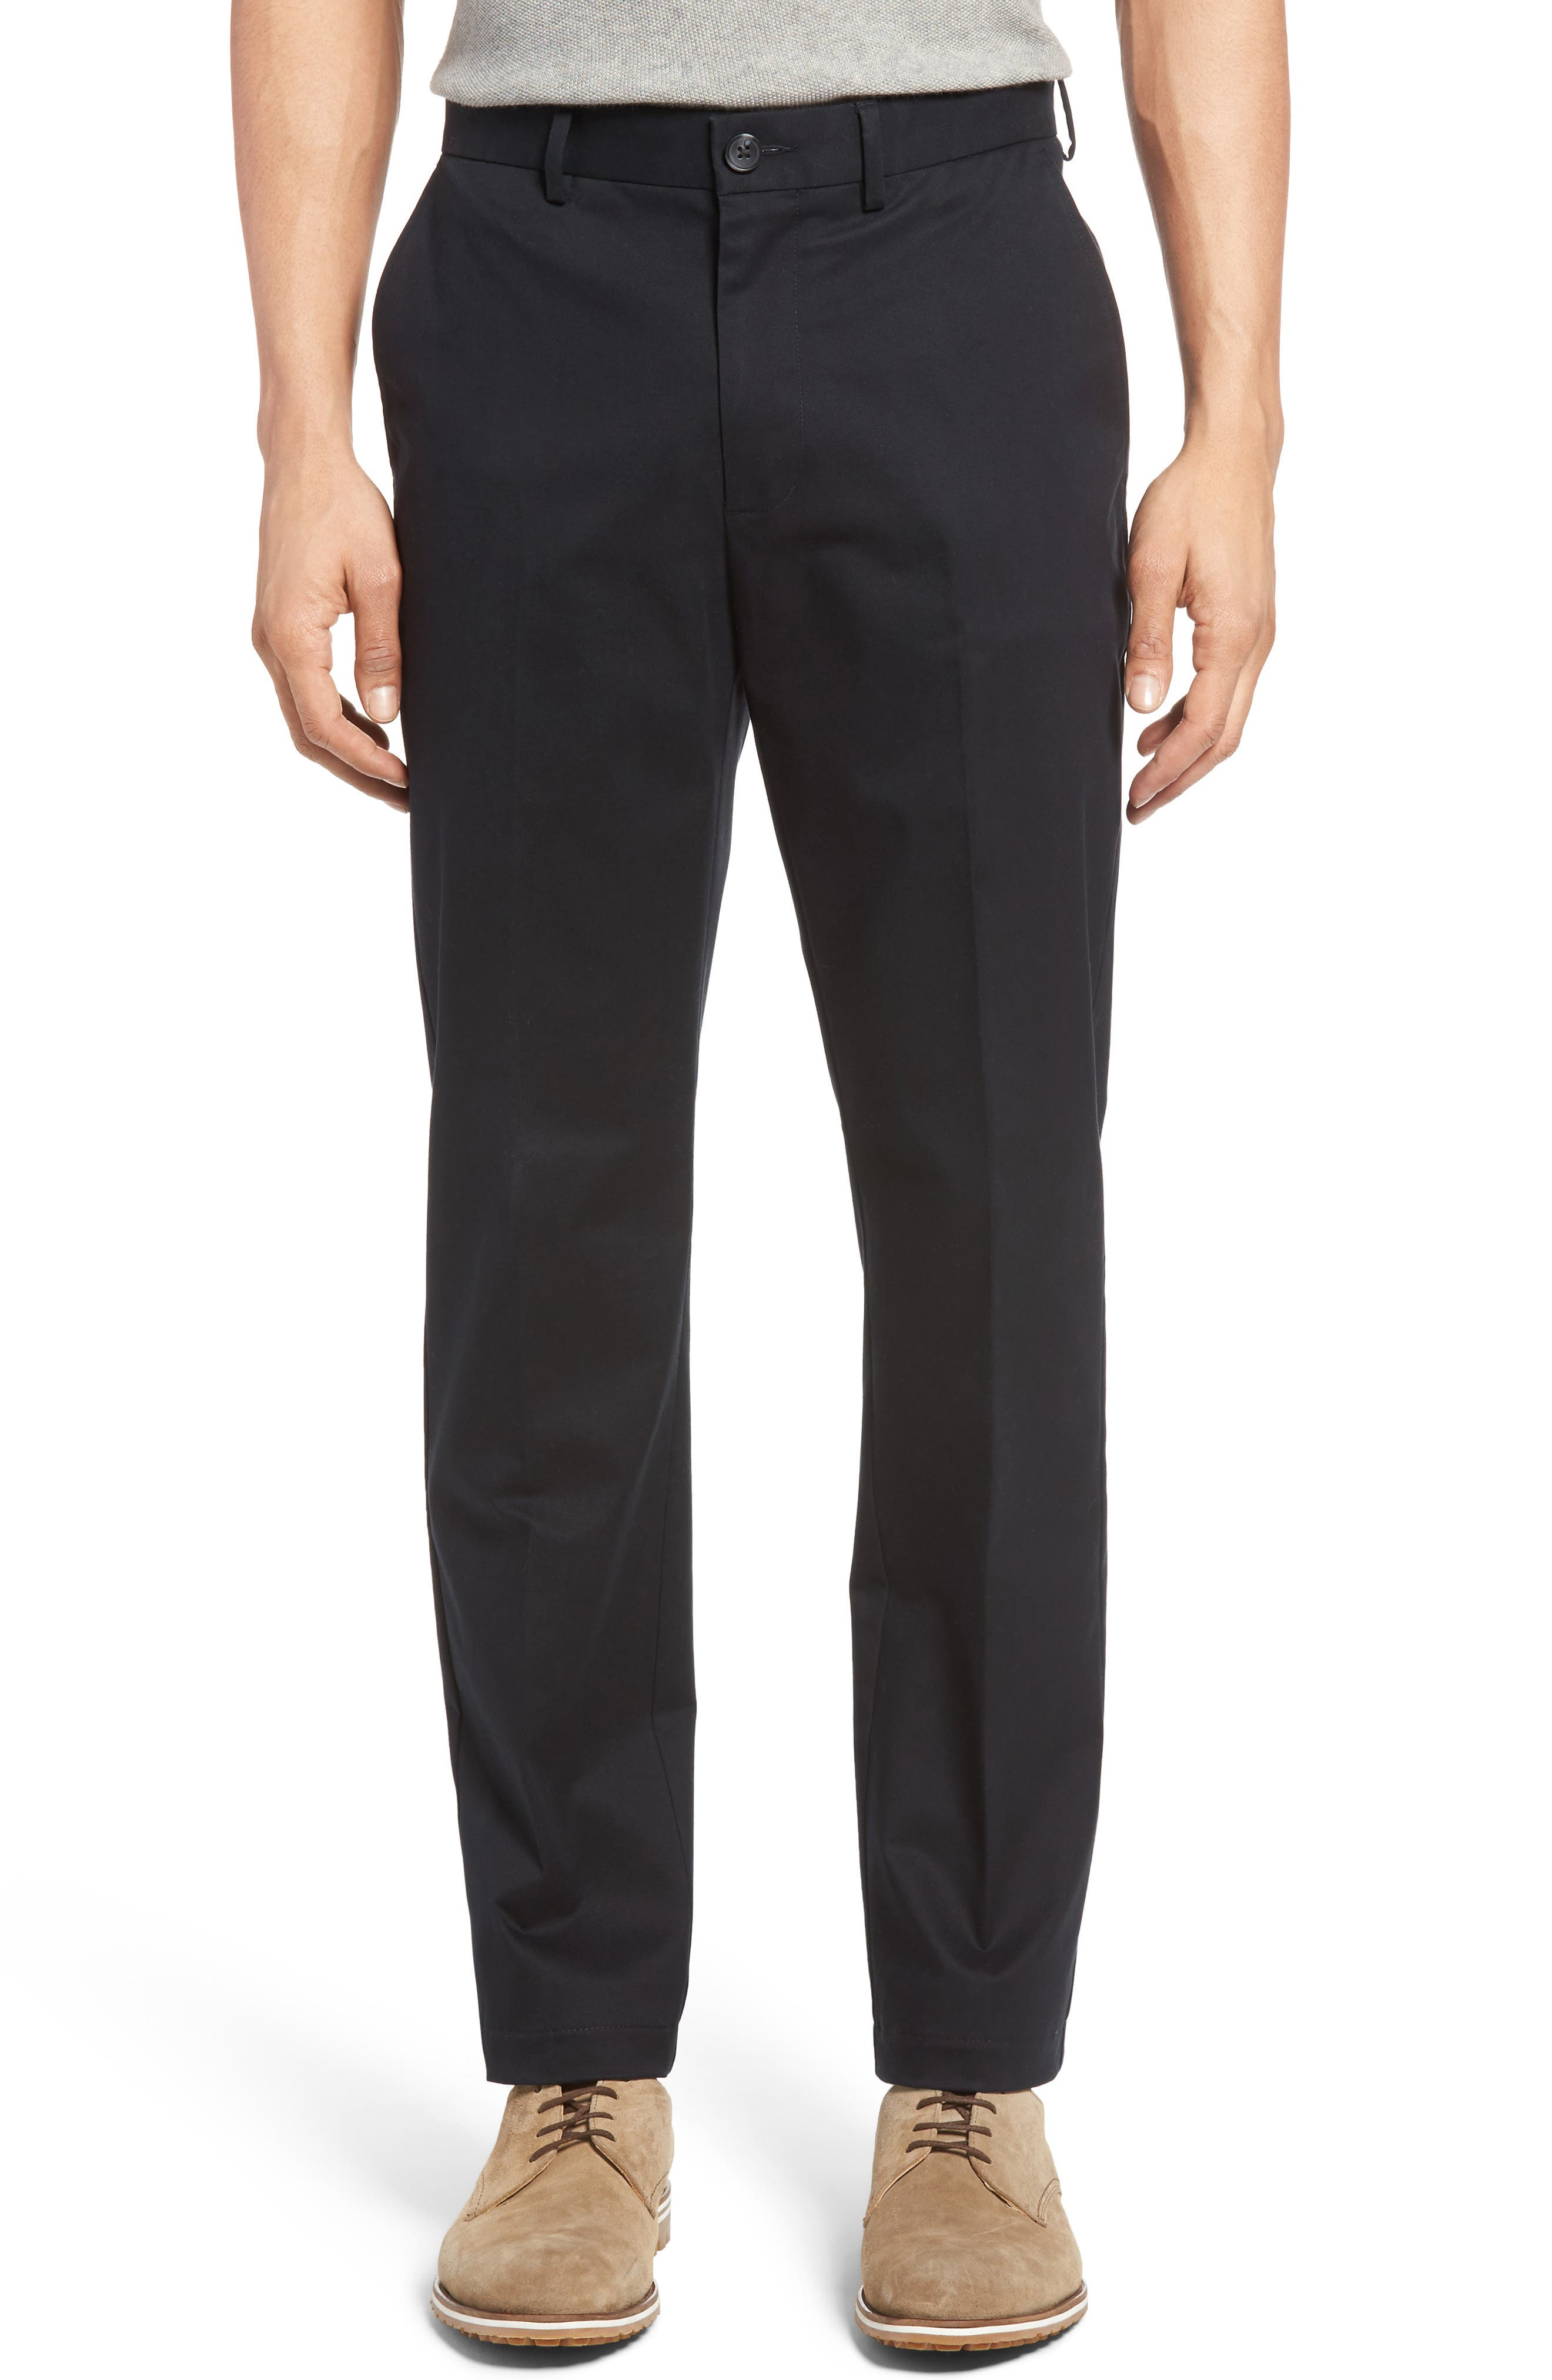 Nordstrom Men's Shop Georgetown Chinos,                             Main thumbnail 1, color,                             001